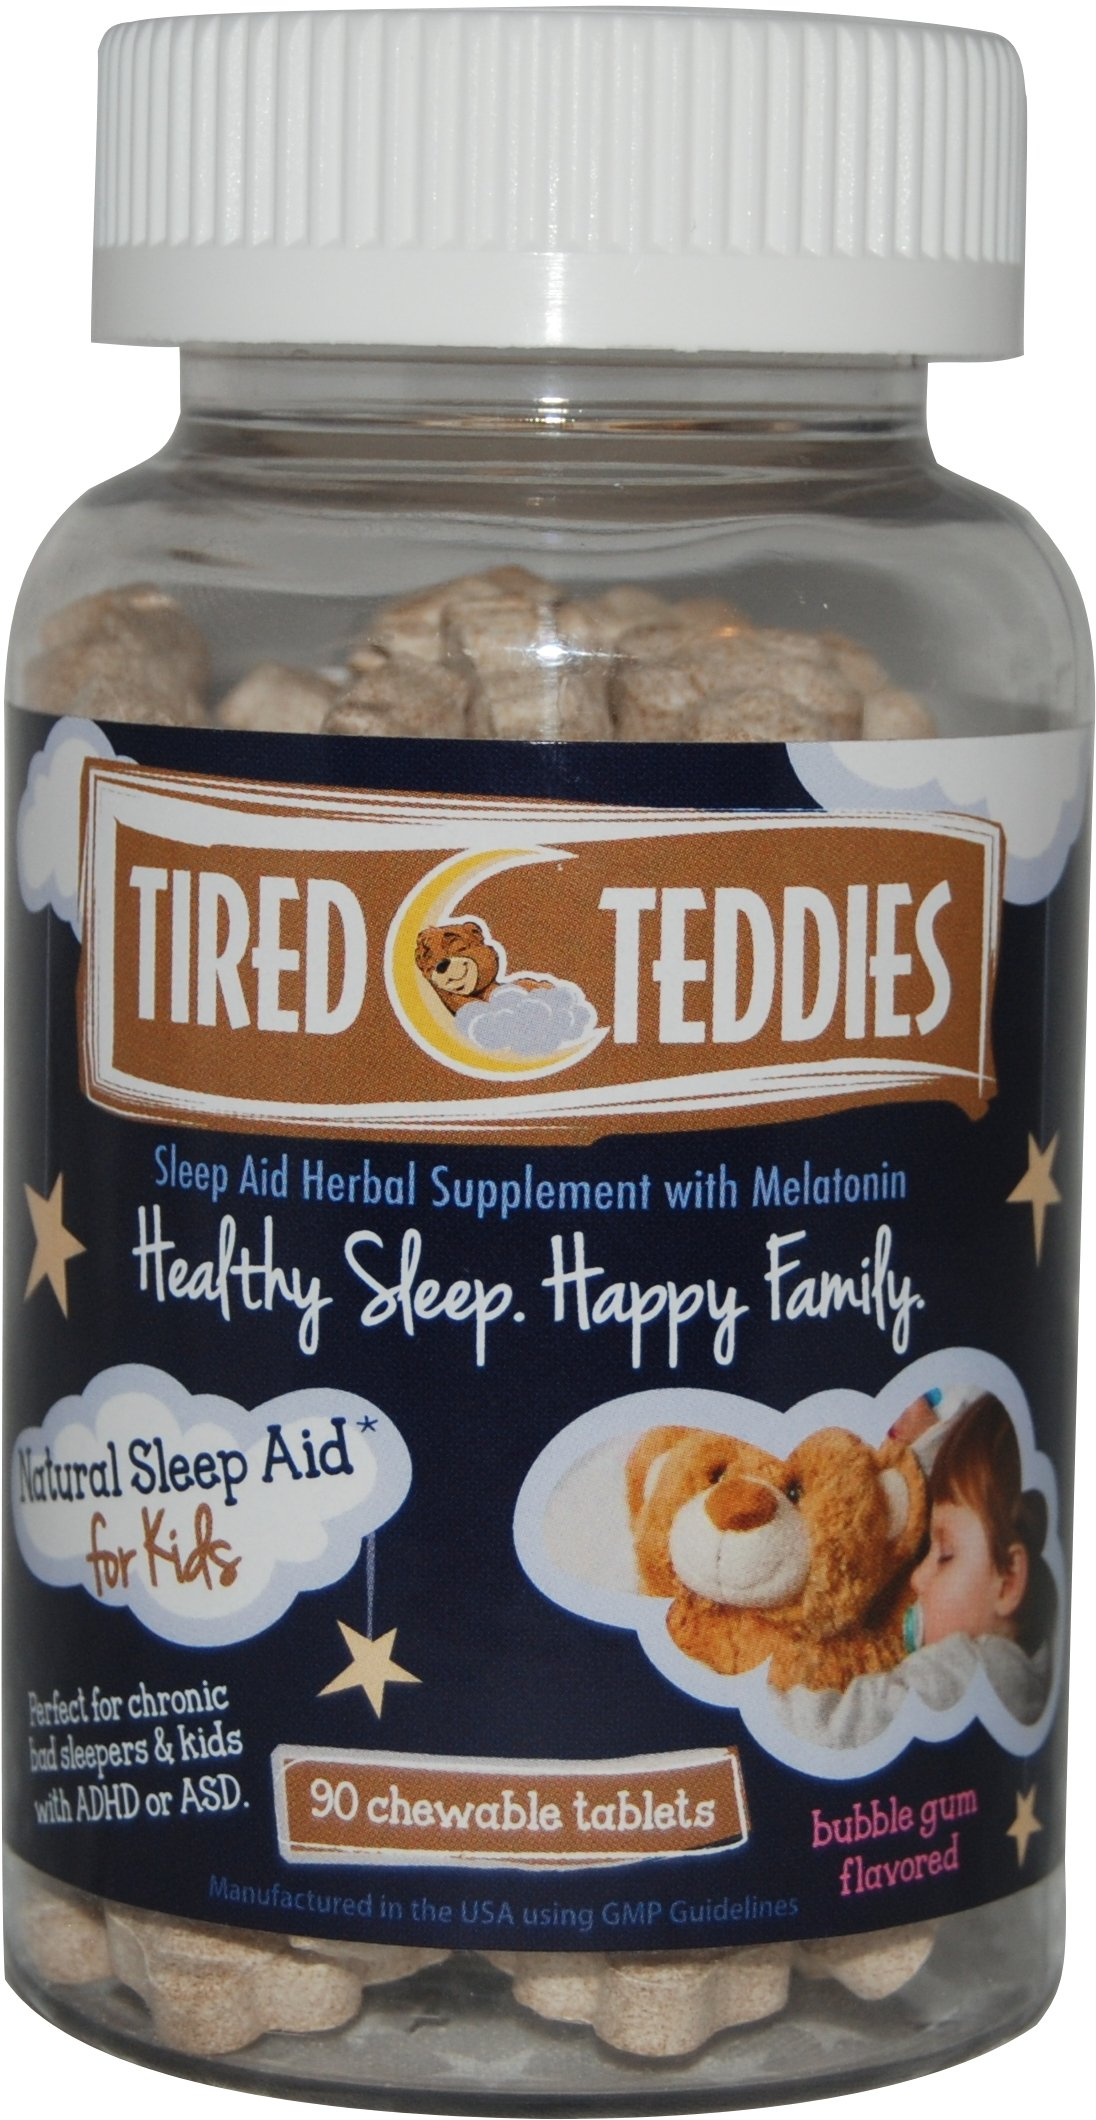 Tired Teddies Natural Sleep Aid for Kids - 90 Tablets; Low Dose Melatonin for Kids